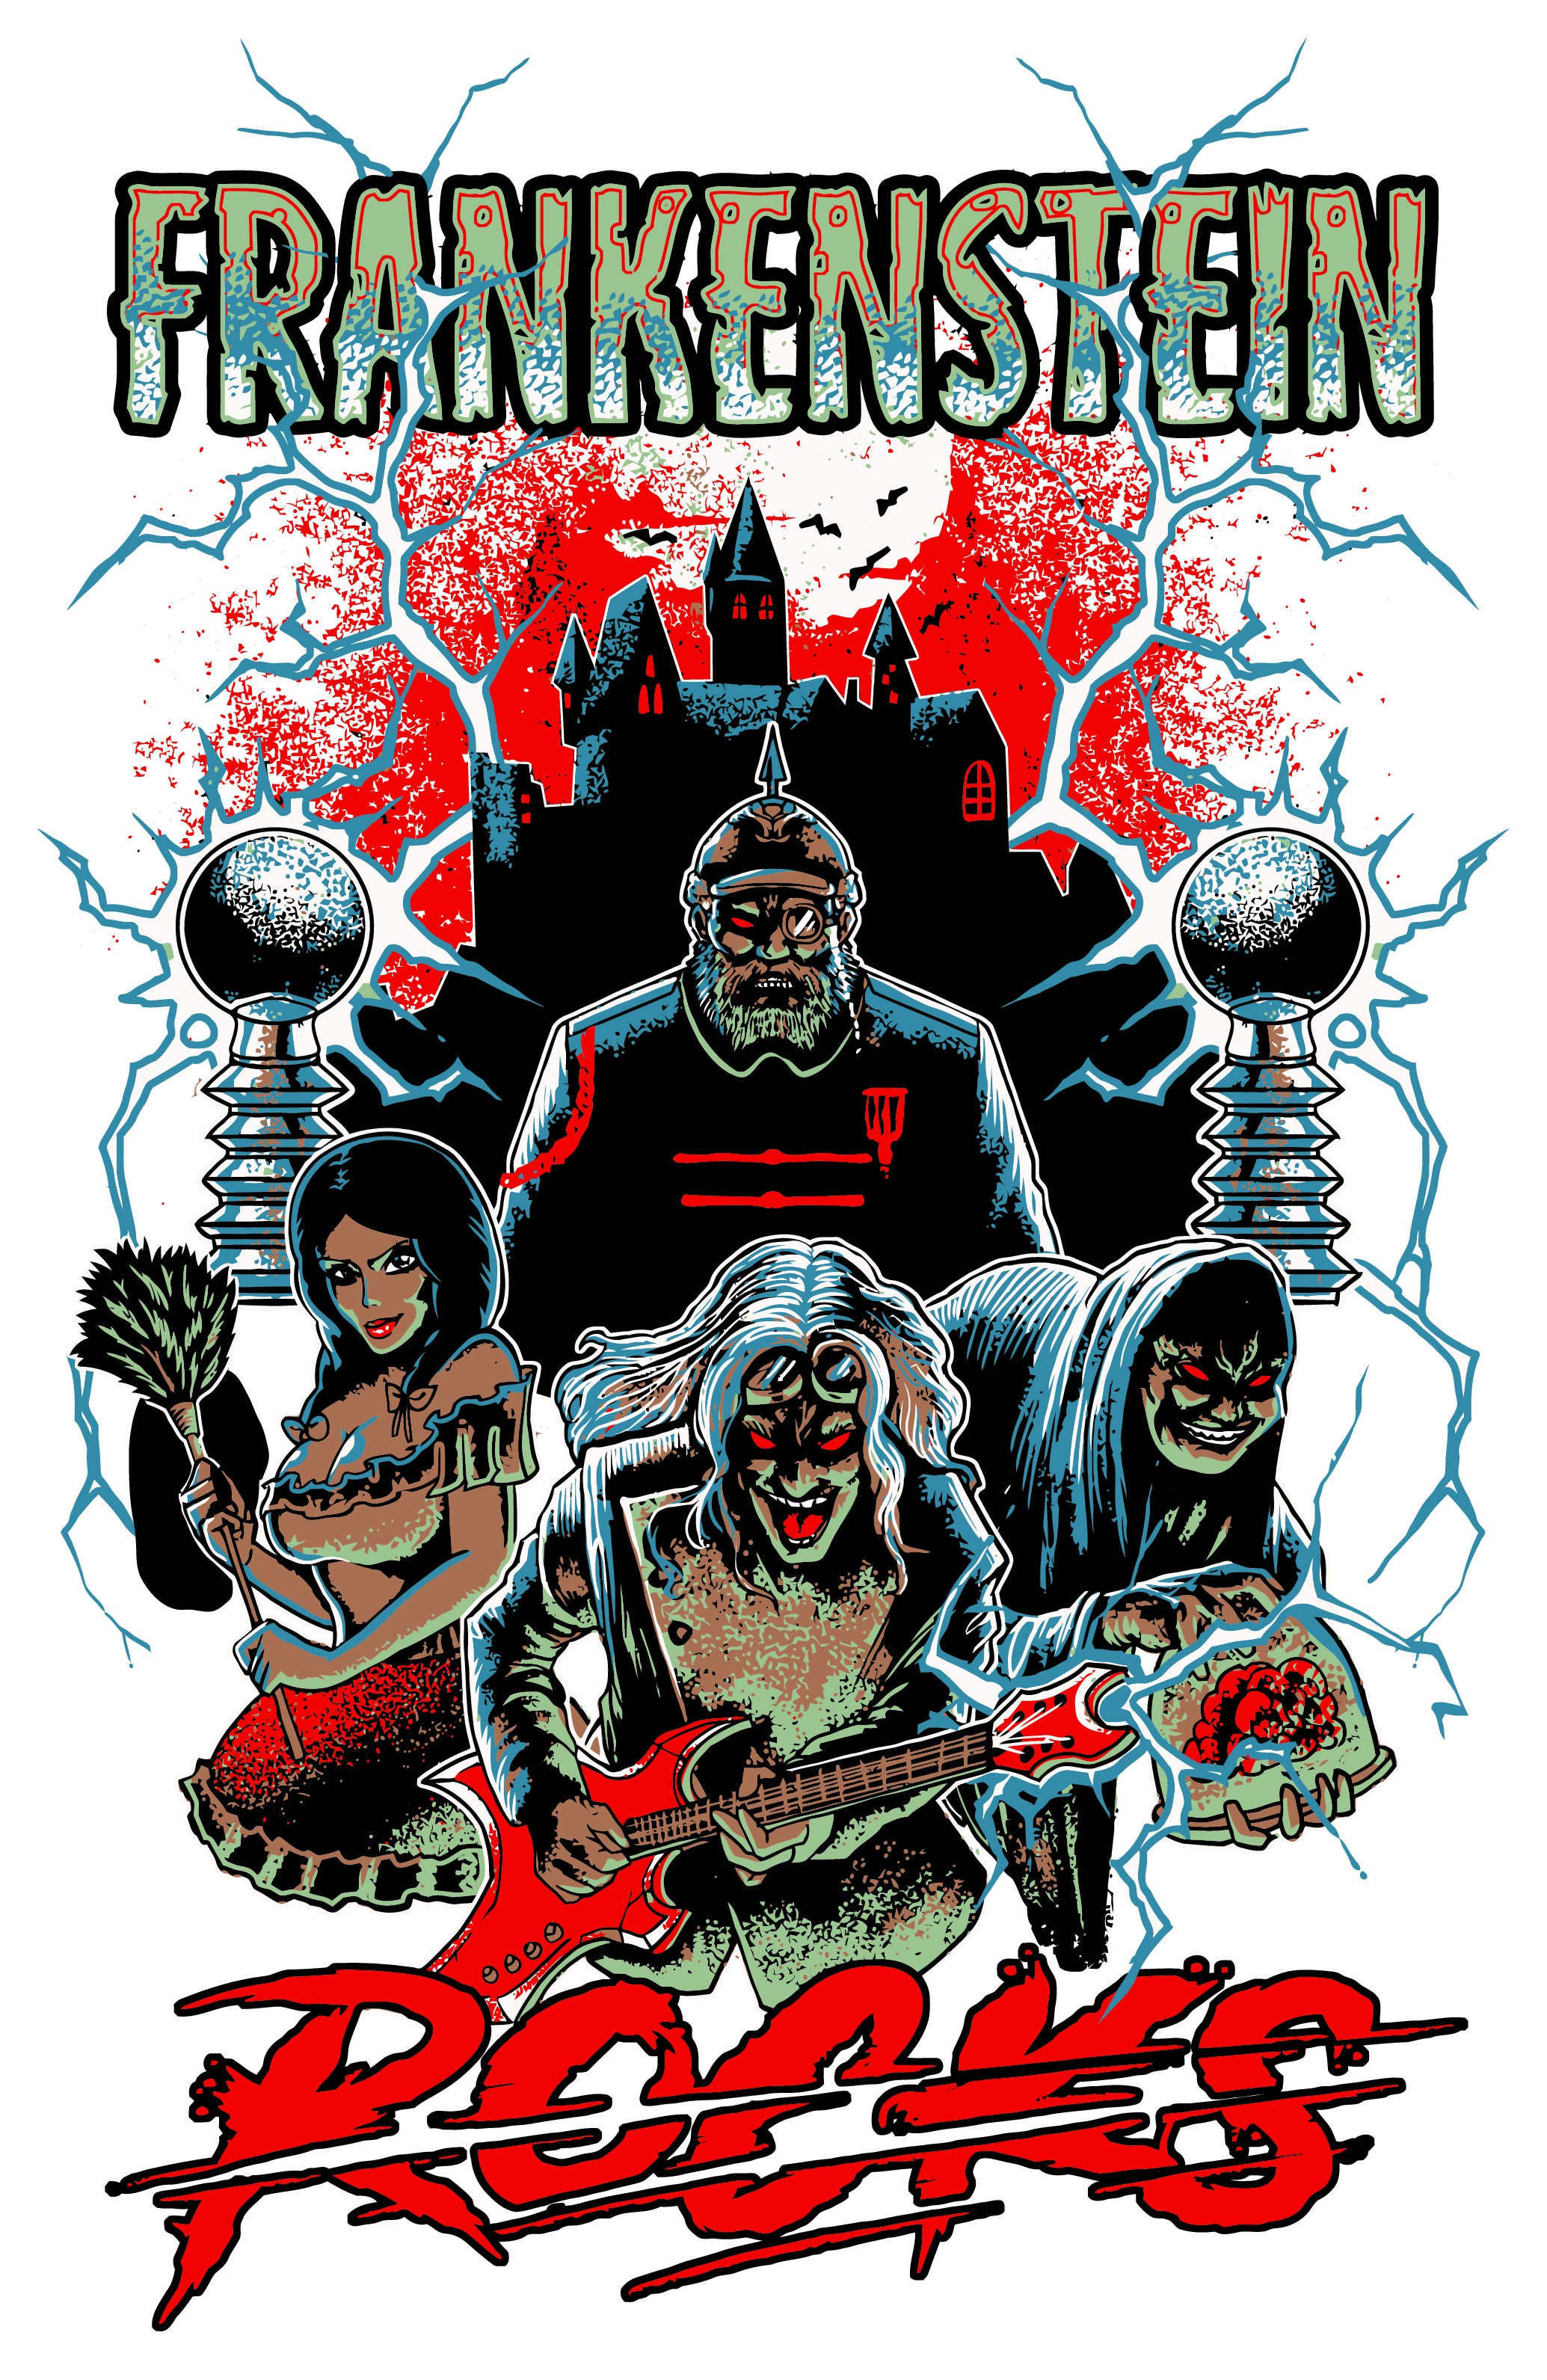 """Comic Book"" Front Cover Style for ""FRANKENSTEIN ROCKS"" Rock and roll musical"